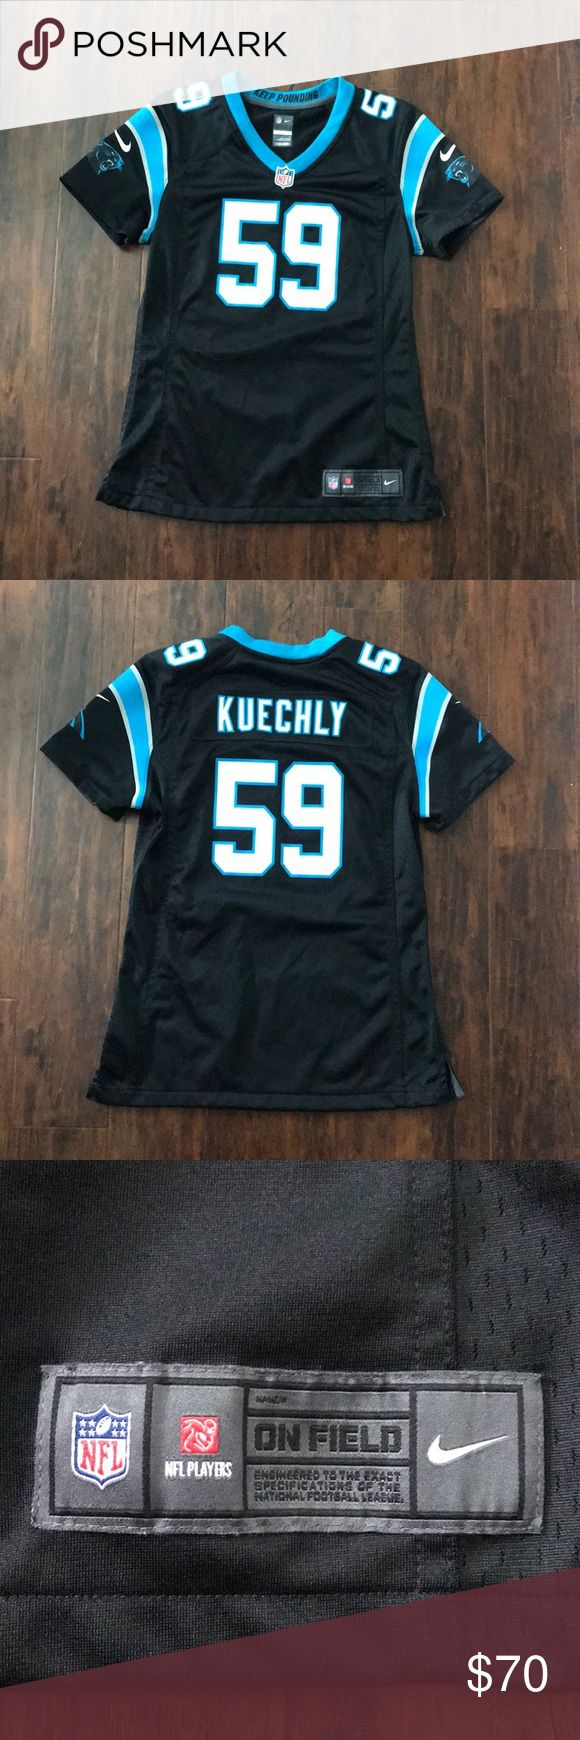 BOGO 1/2 OFF Carolina Panthers Luke Kuechly Jersey Brand new, never worn, official Nike jersey, perfect condition ✨make an offer!✨ feel free to comment if you have any questions 😊‼️ALL LISTINGS BUY ONE GET ONE HALF OFF W/ DISCOUNTED SHIPPING❗️(of the two items, the less expensive item will be half off) just make a bundle and I'll re-price‼️ Nike Tops